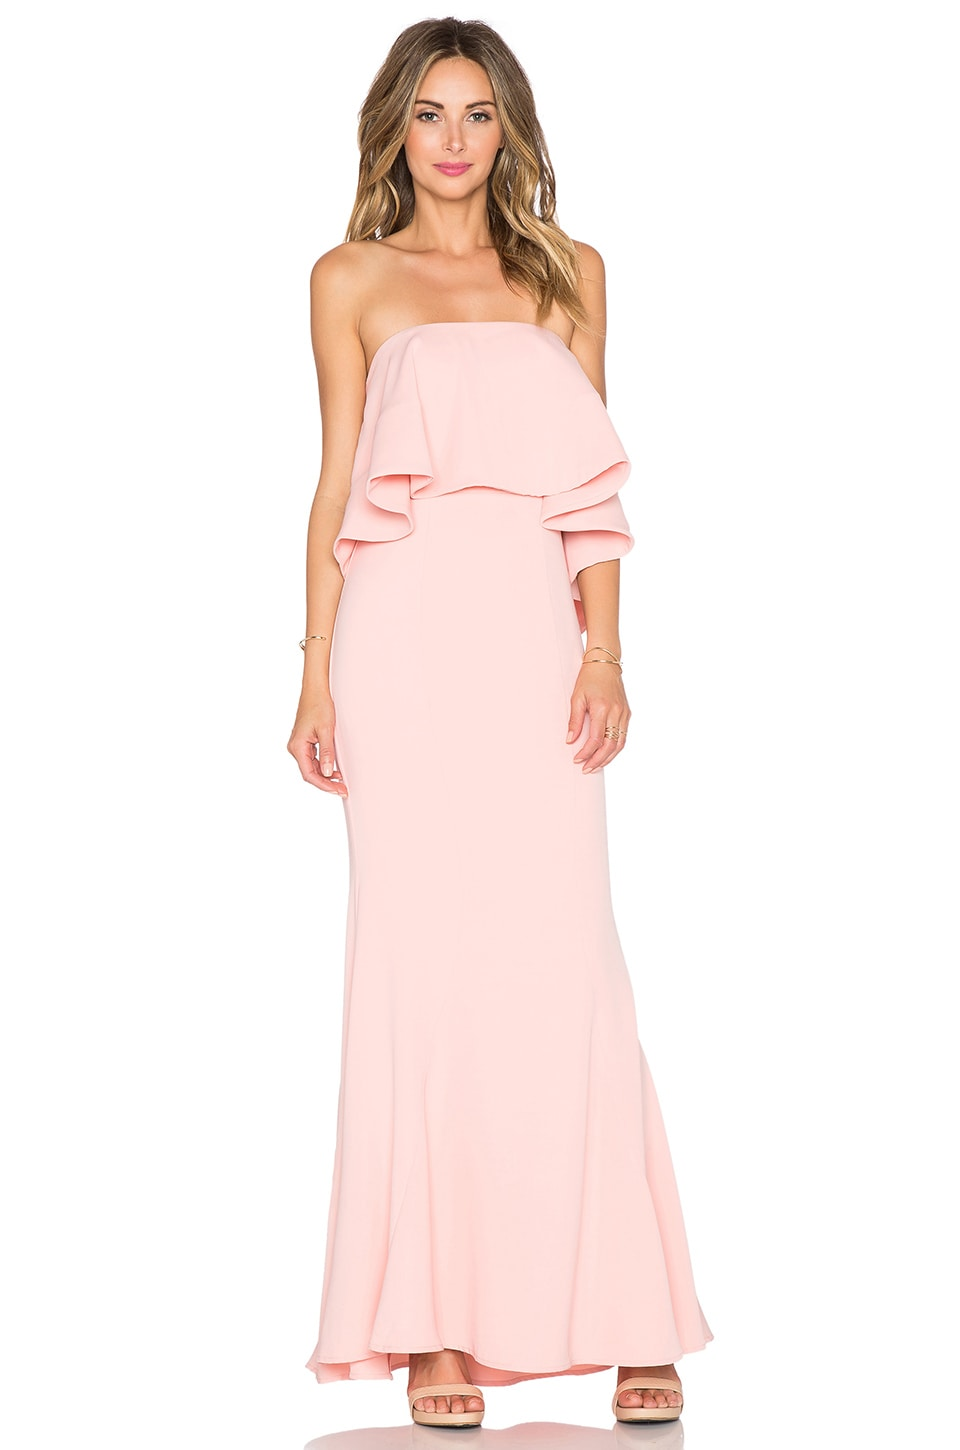 JARLO Lily Maxi Dress in Pink